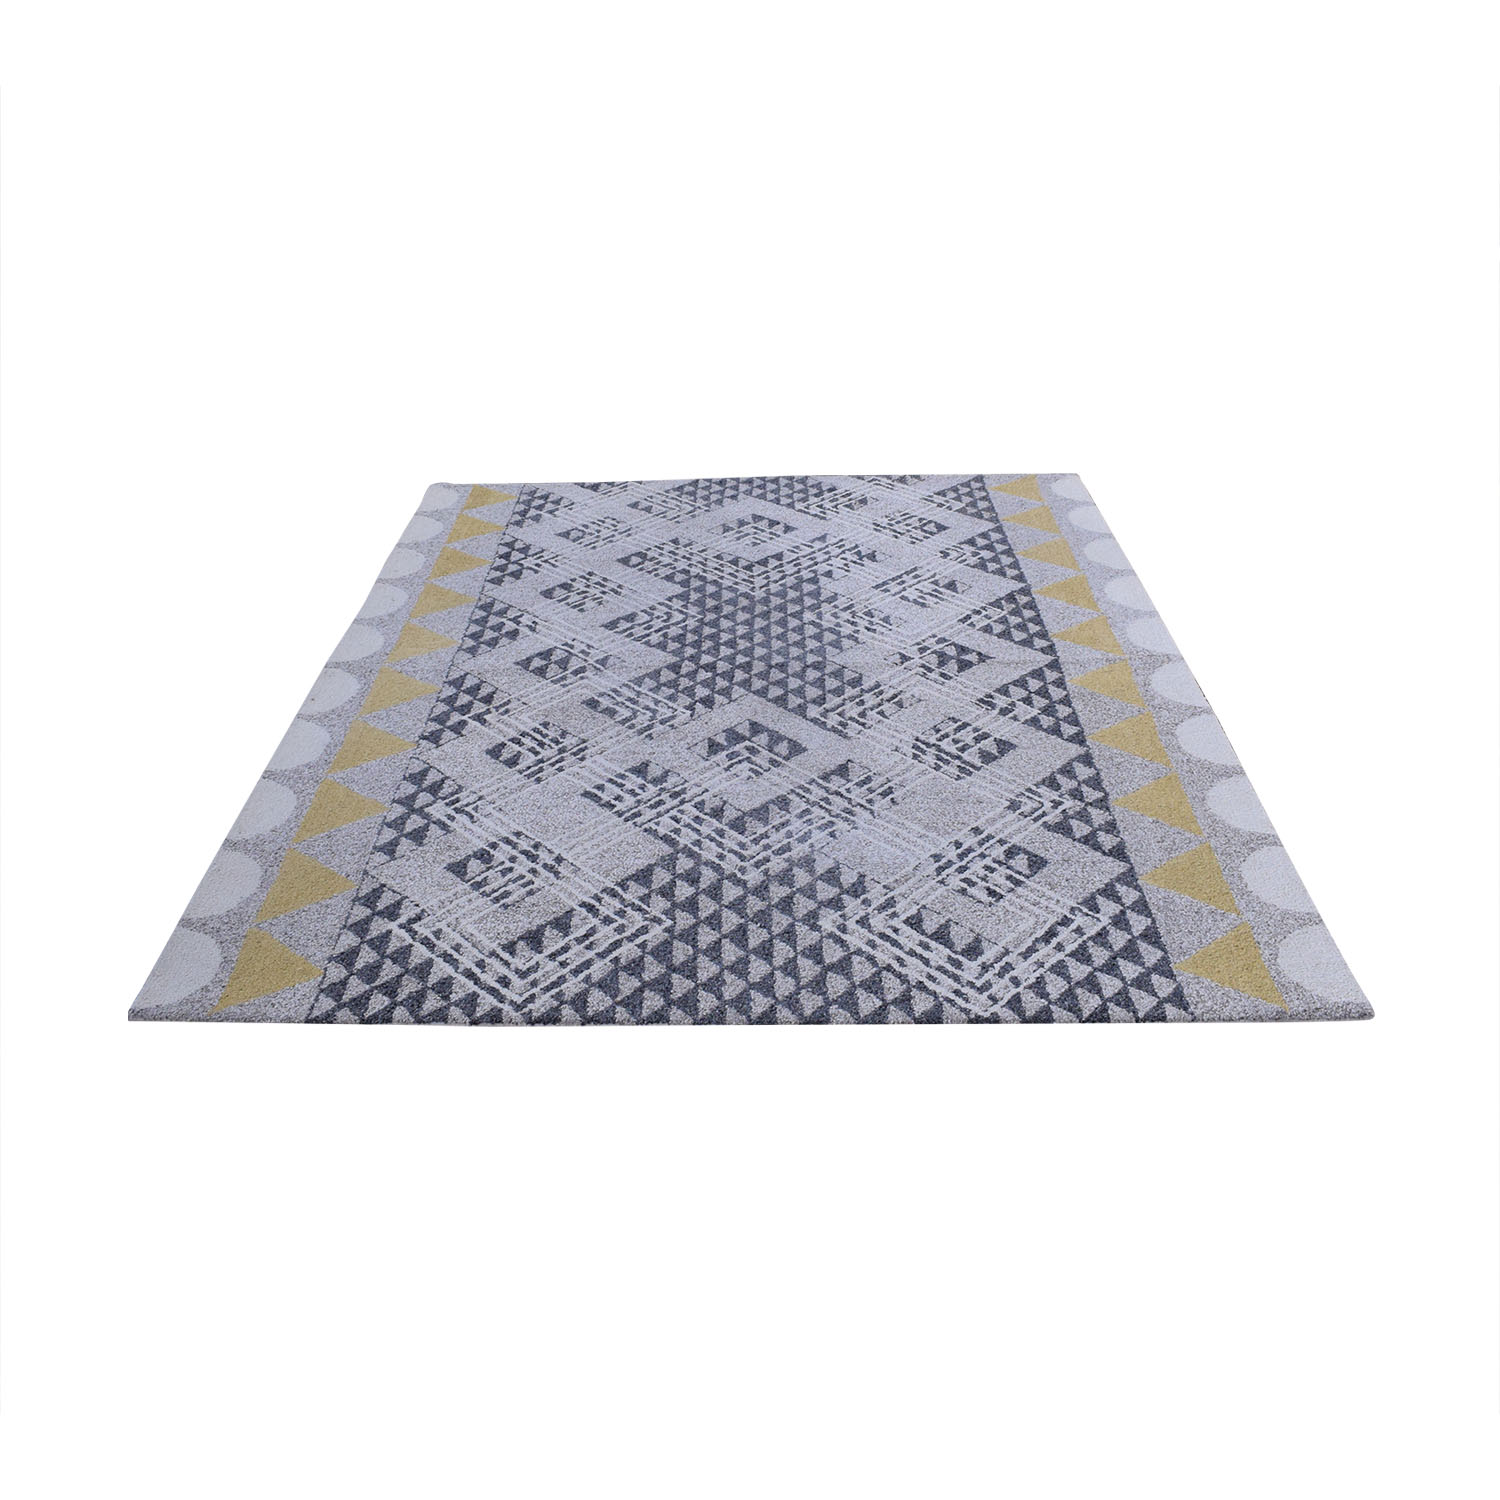 Crate & Barrel Crate & Barrel Thea Rug dimensions